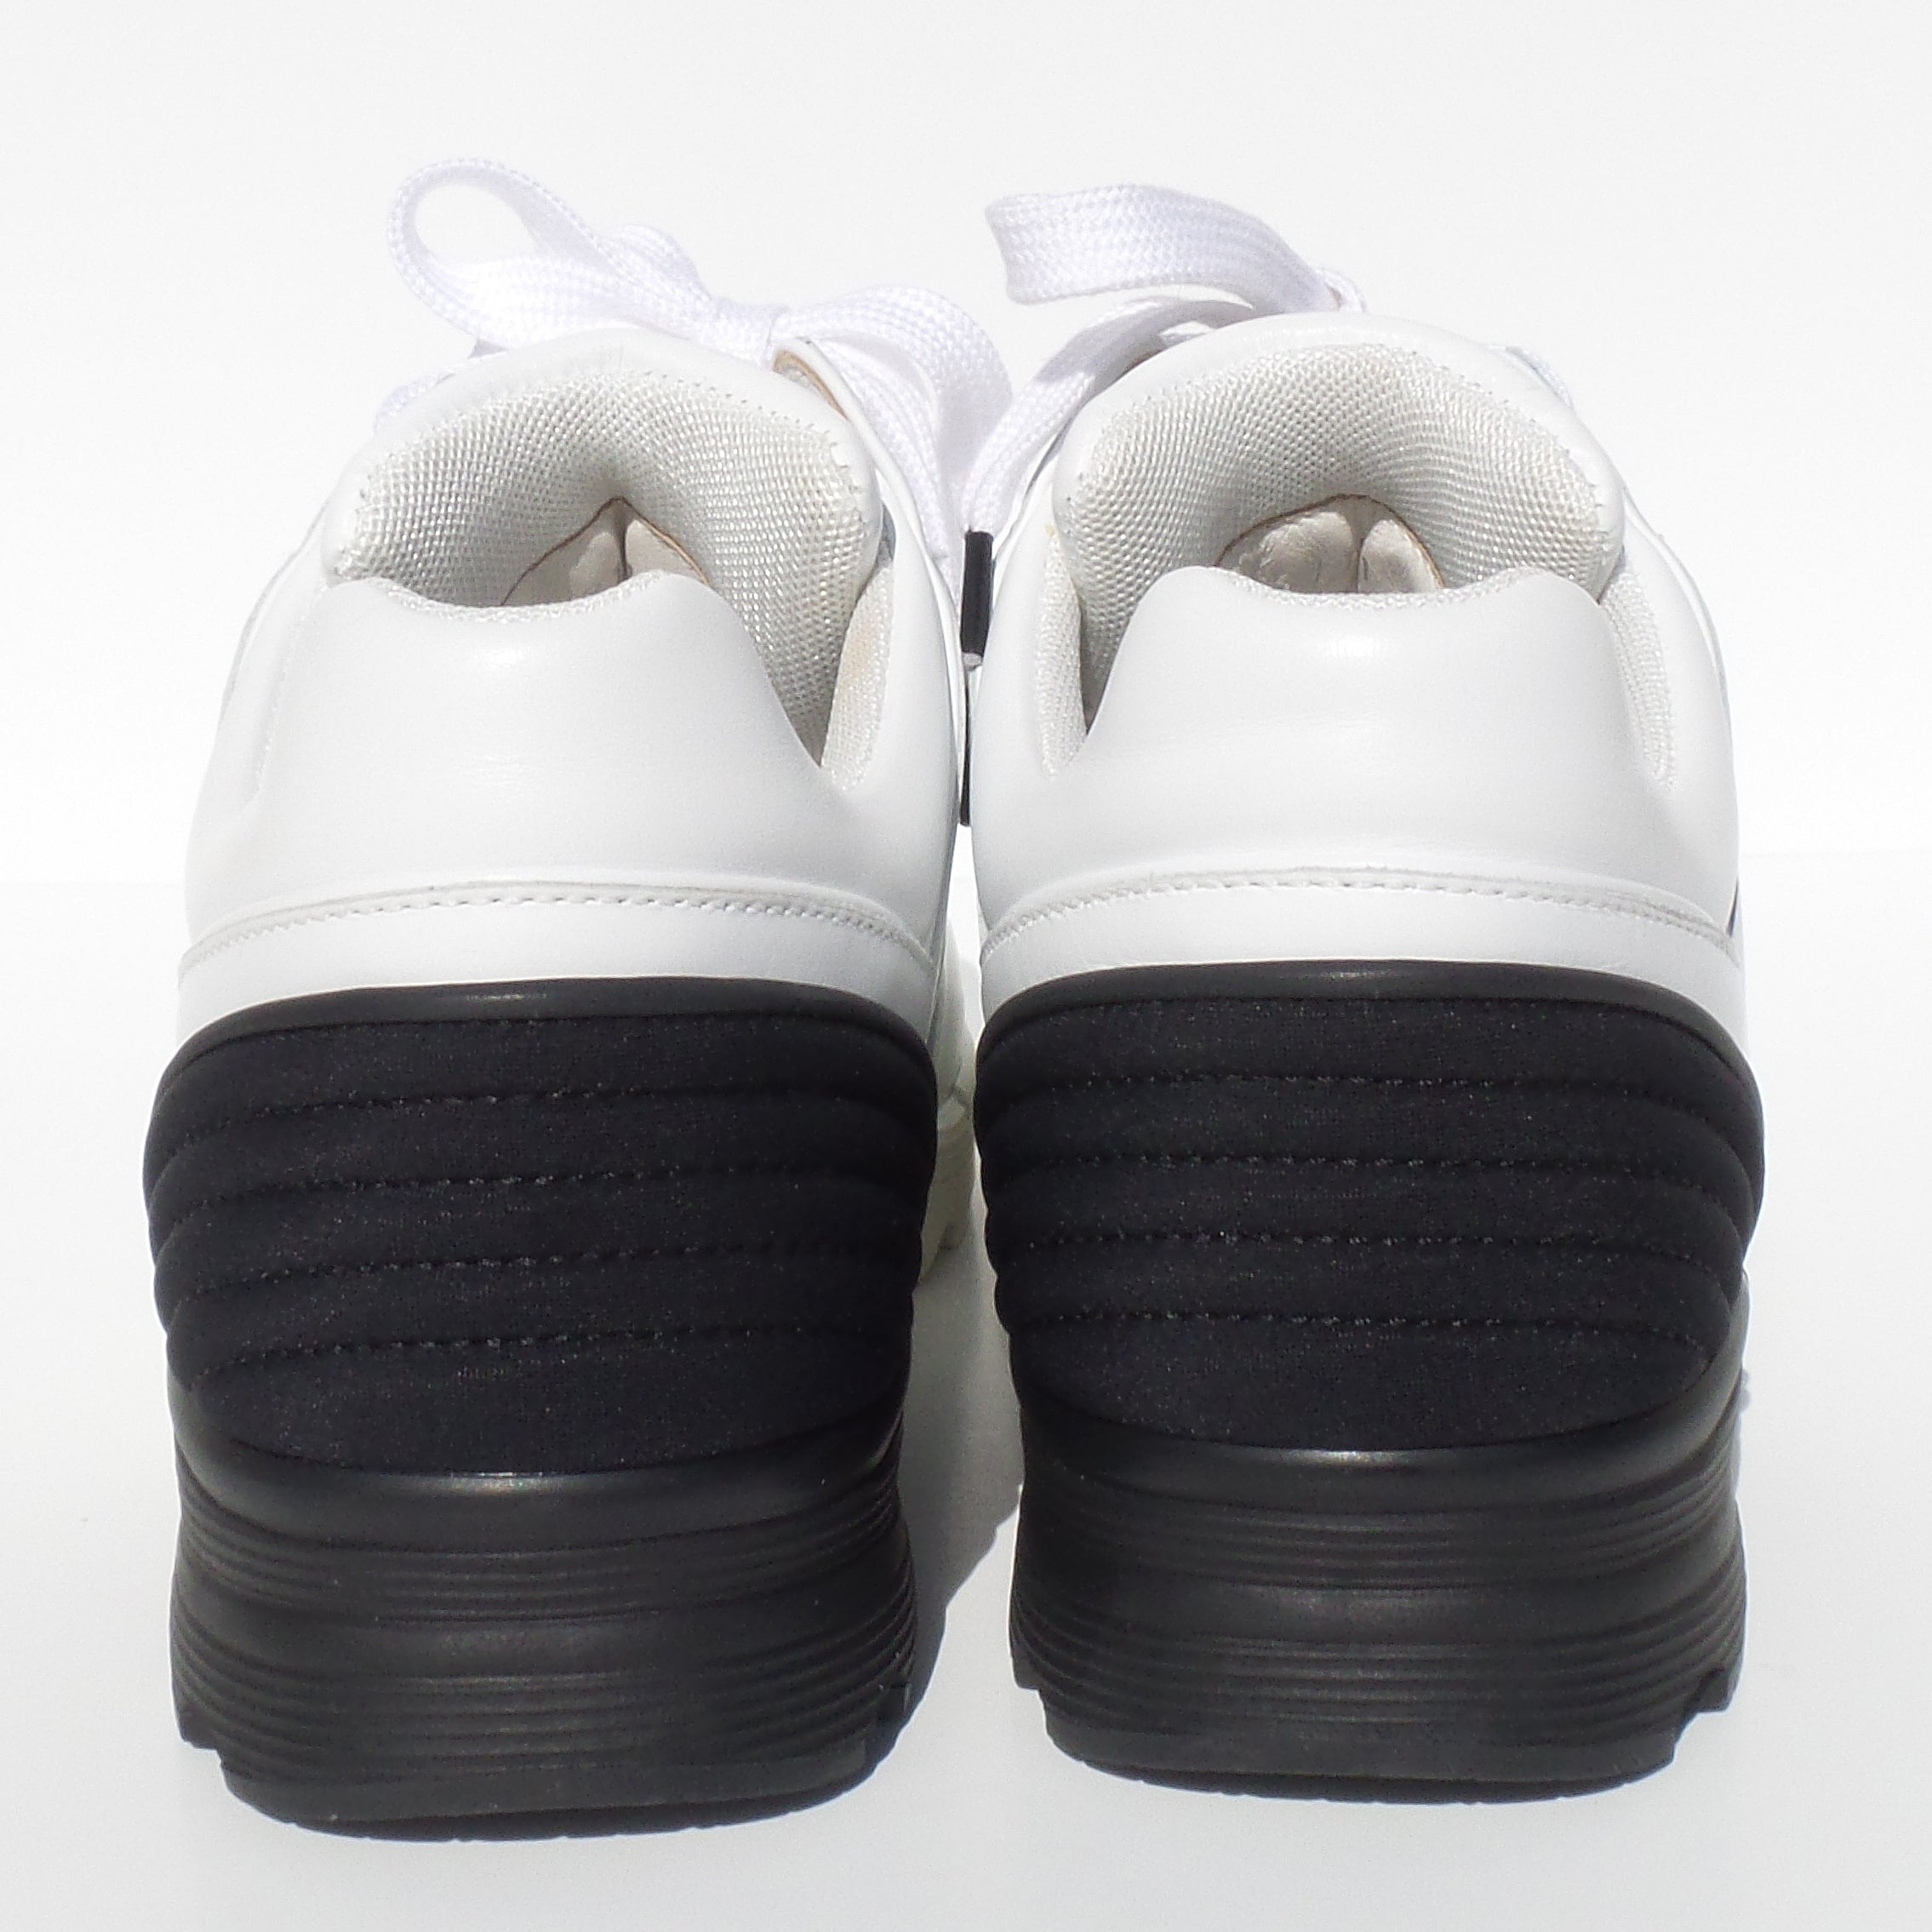 CHANEL 16P White Leather Black Neoprene Heel CC Logo Trainers Sneakers 39.5 $950